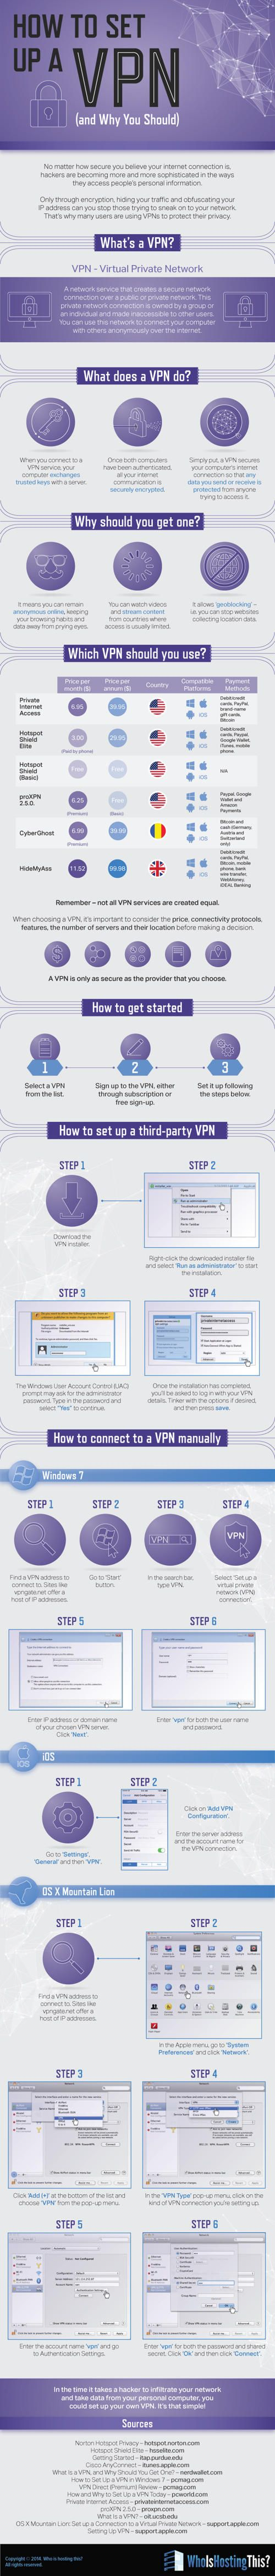 How to set up a VPN – and why you should, if you care about privacy